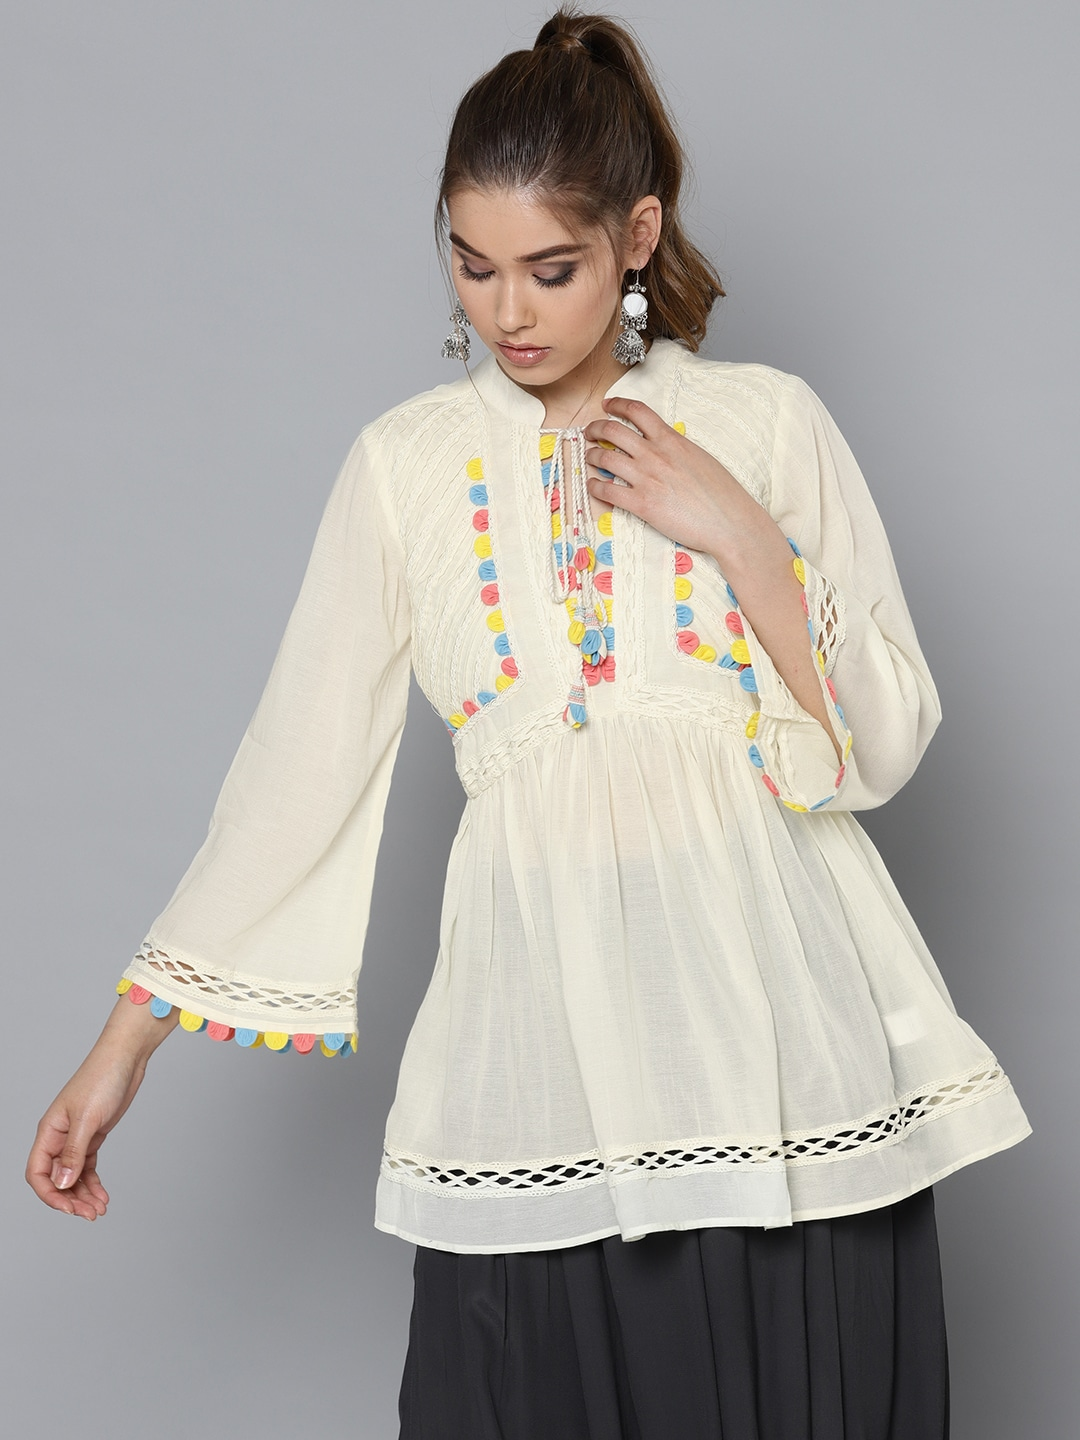 9ceffa93b0e Ruffle Tops - Buy Ruffle Top for Women online in India